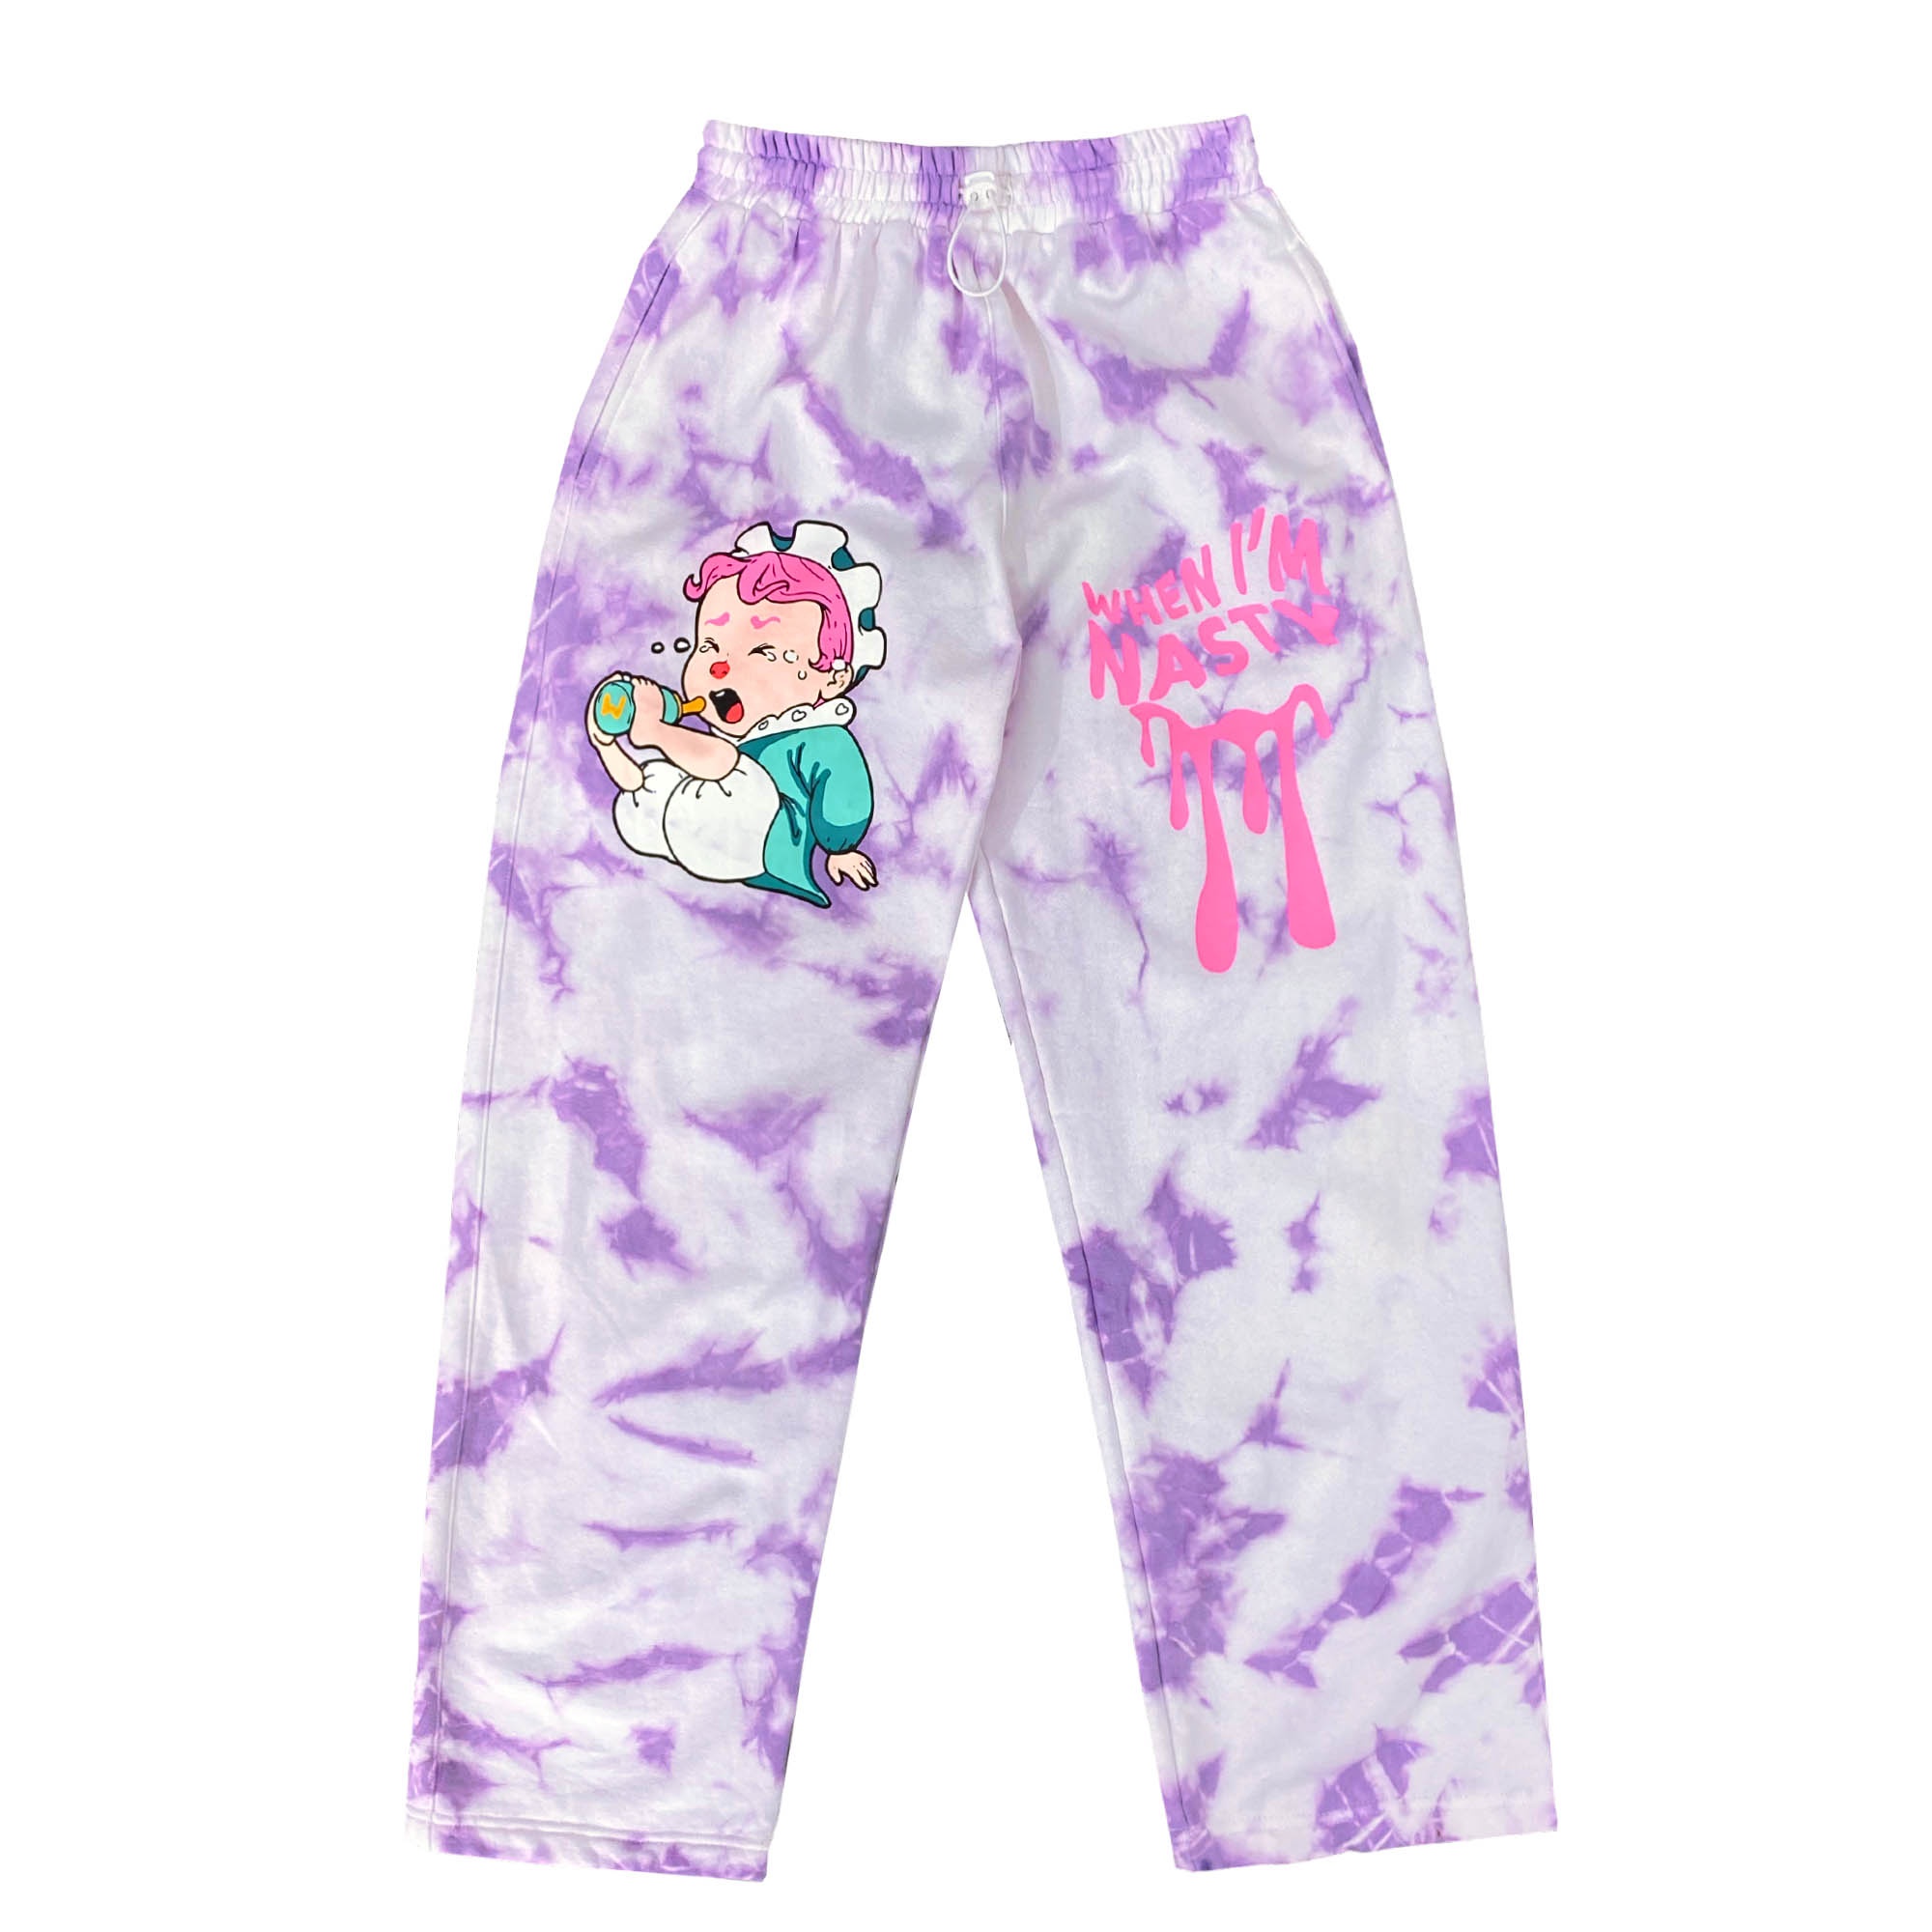 PANTS CRYBABY 19